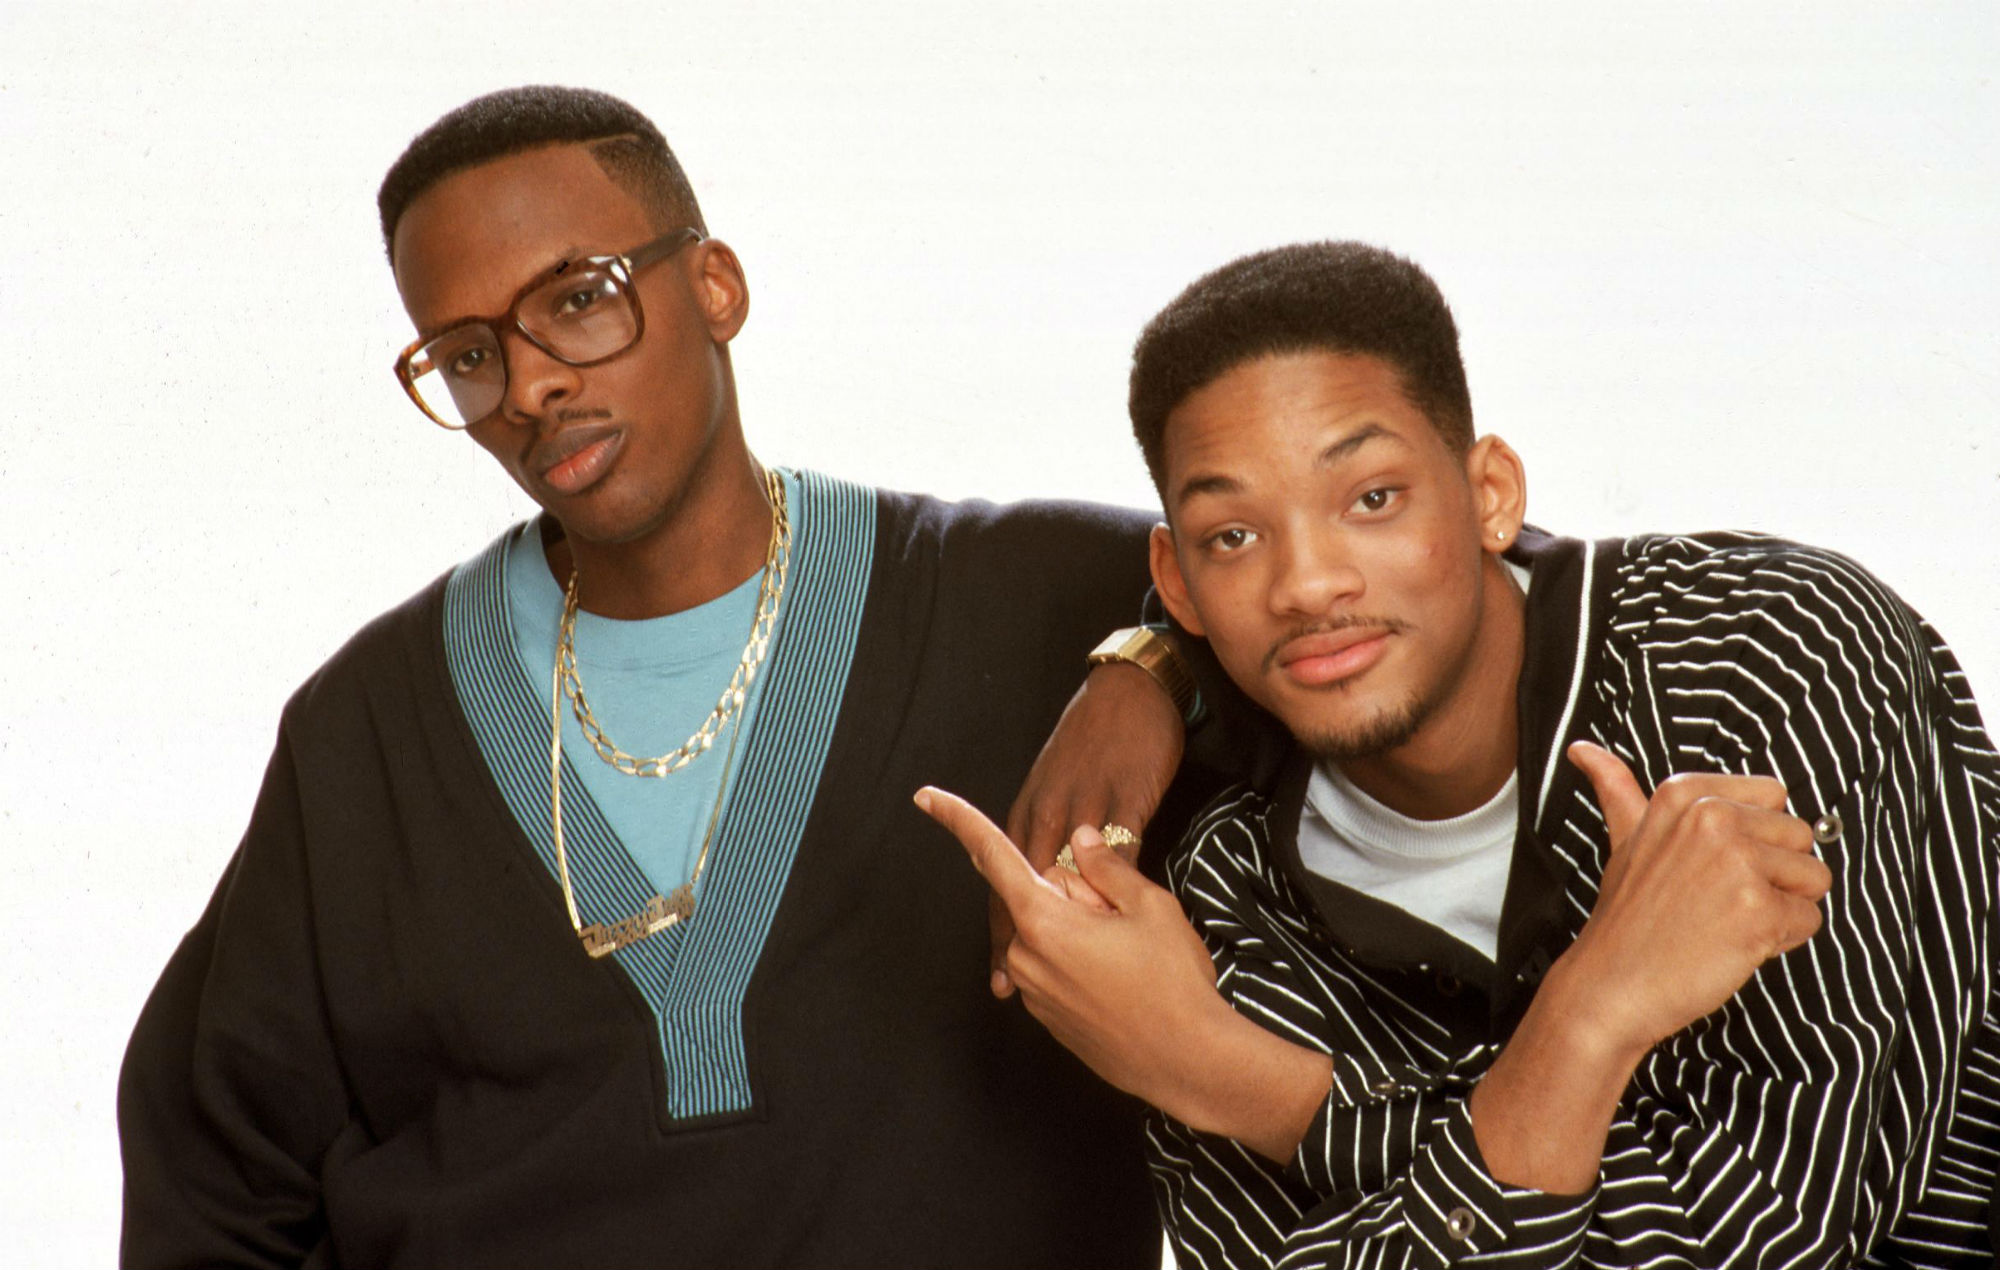 Will Smith is developing a 'Fresh Prince of Bel-Air' spin-off series